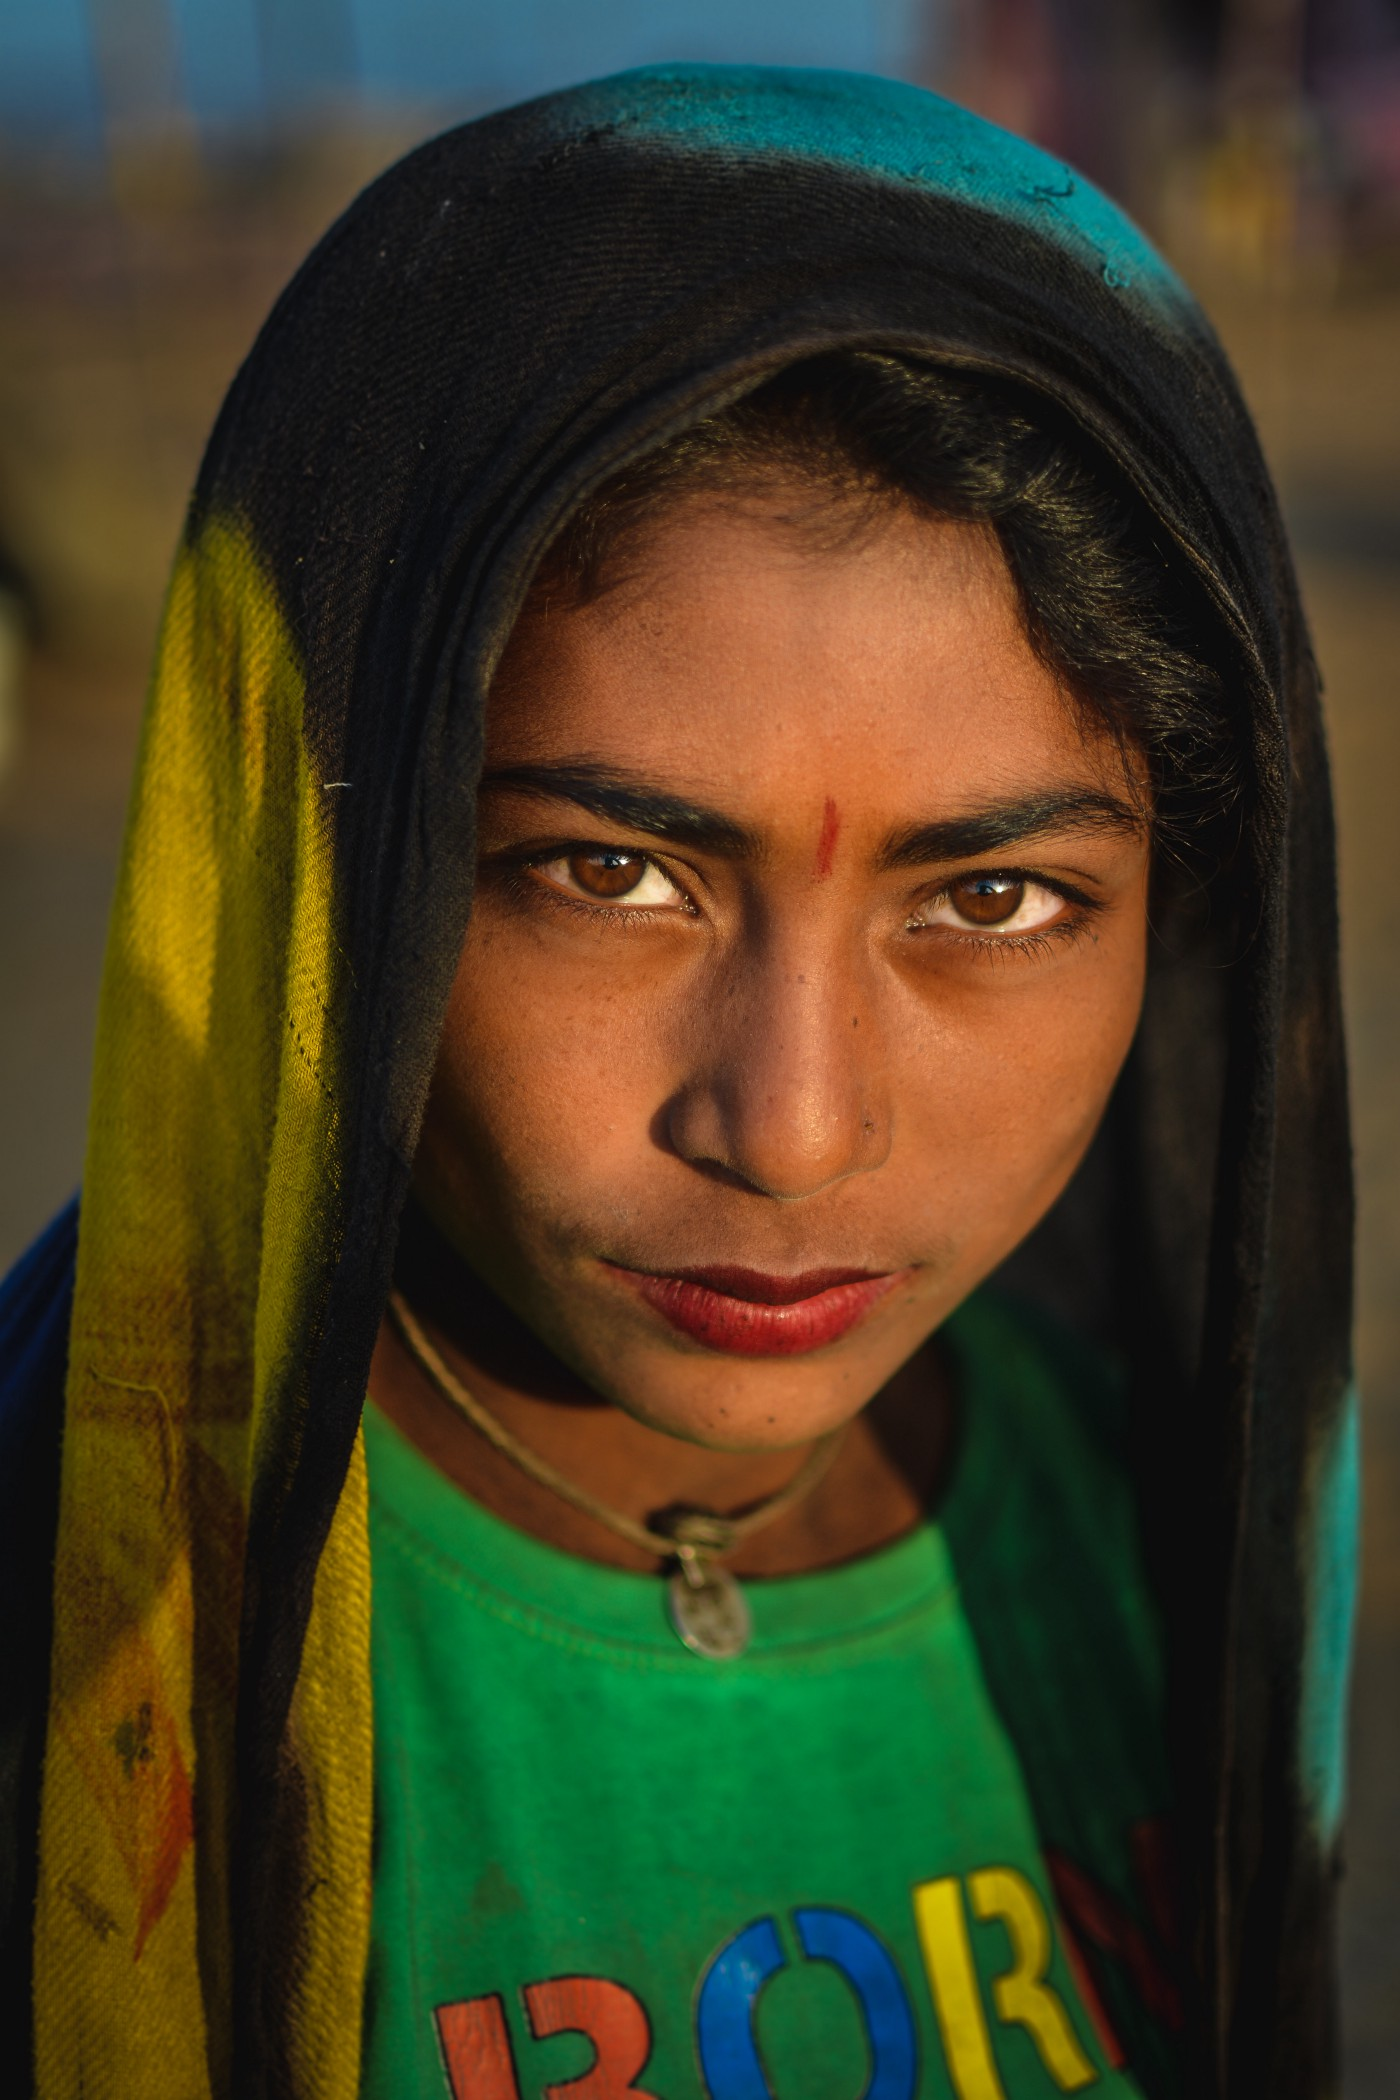 An Indian girl with a bindi on her fore-head and a veil on her head